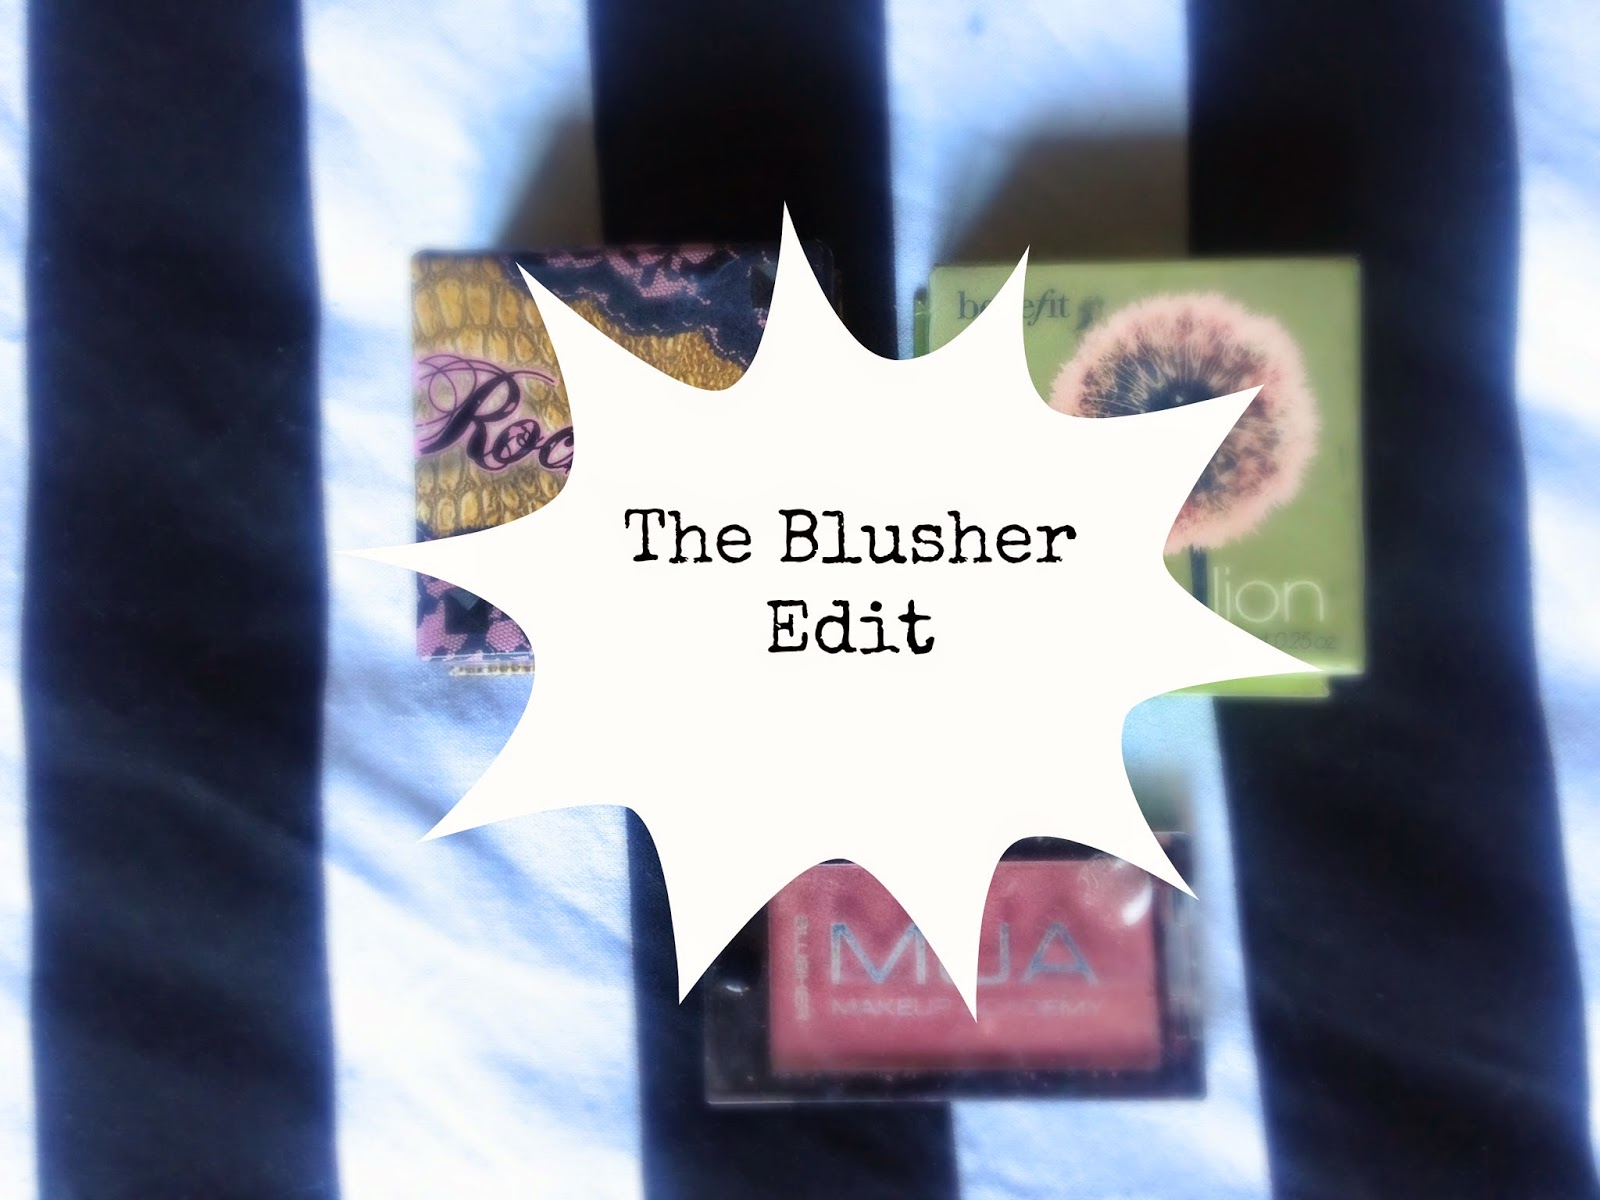 The Blusher Edit